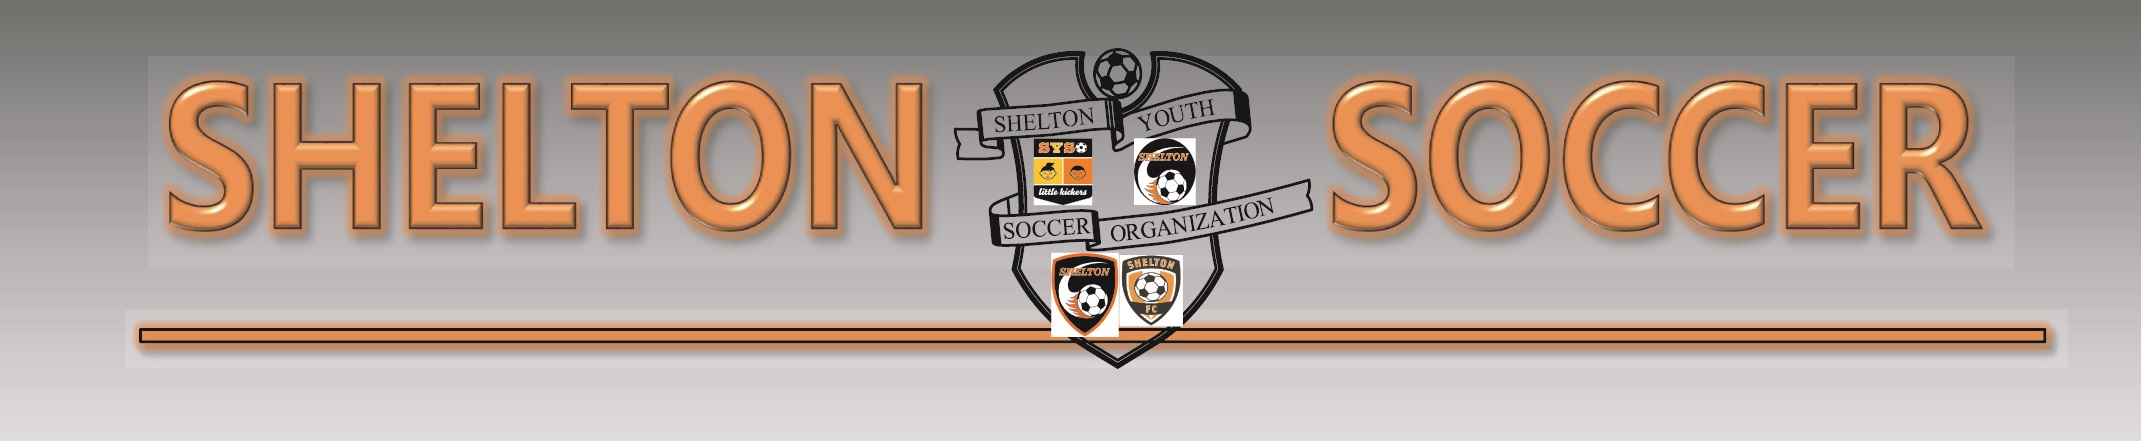 Shelton Youth Soccer Organization, Soccer, Goal, Field